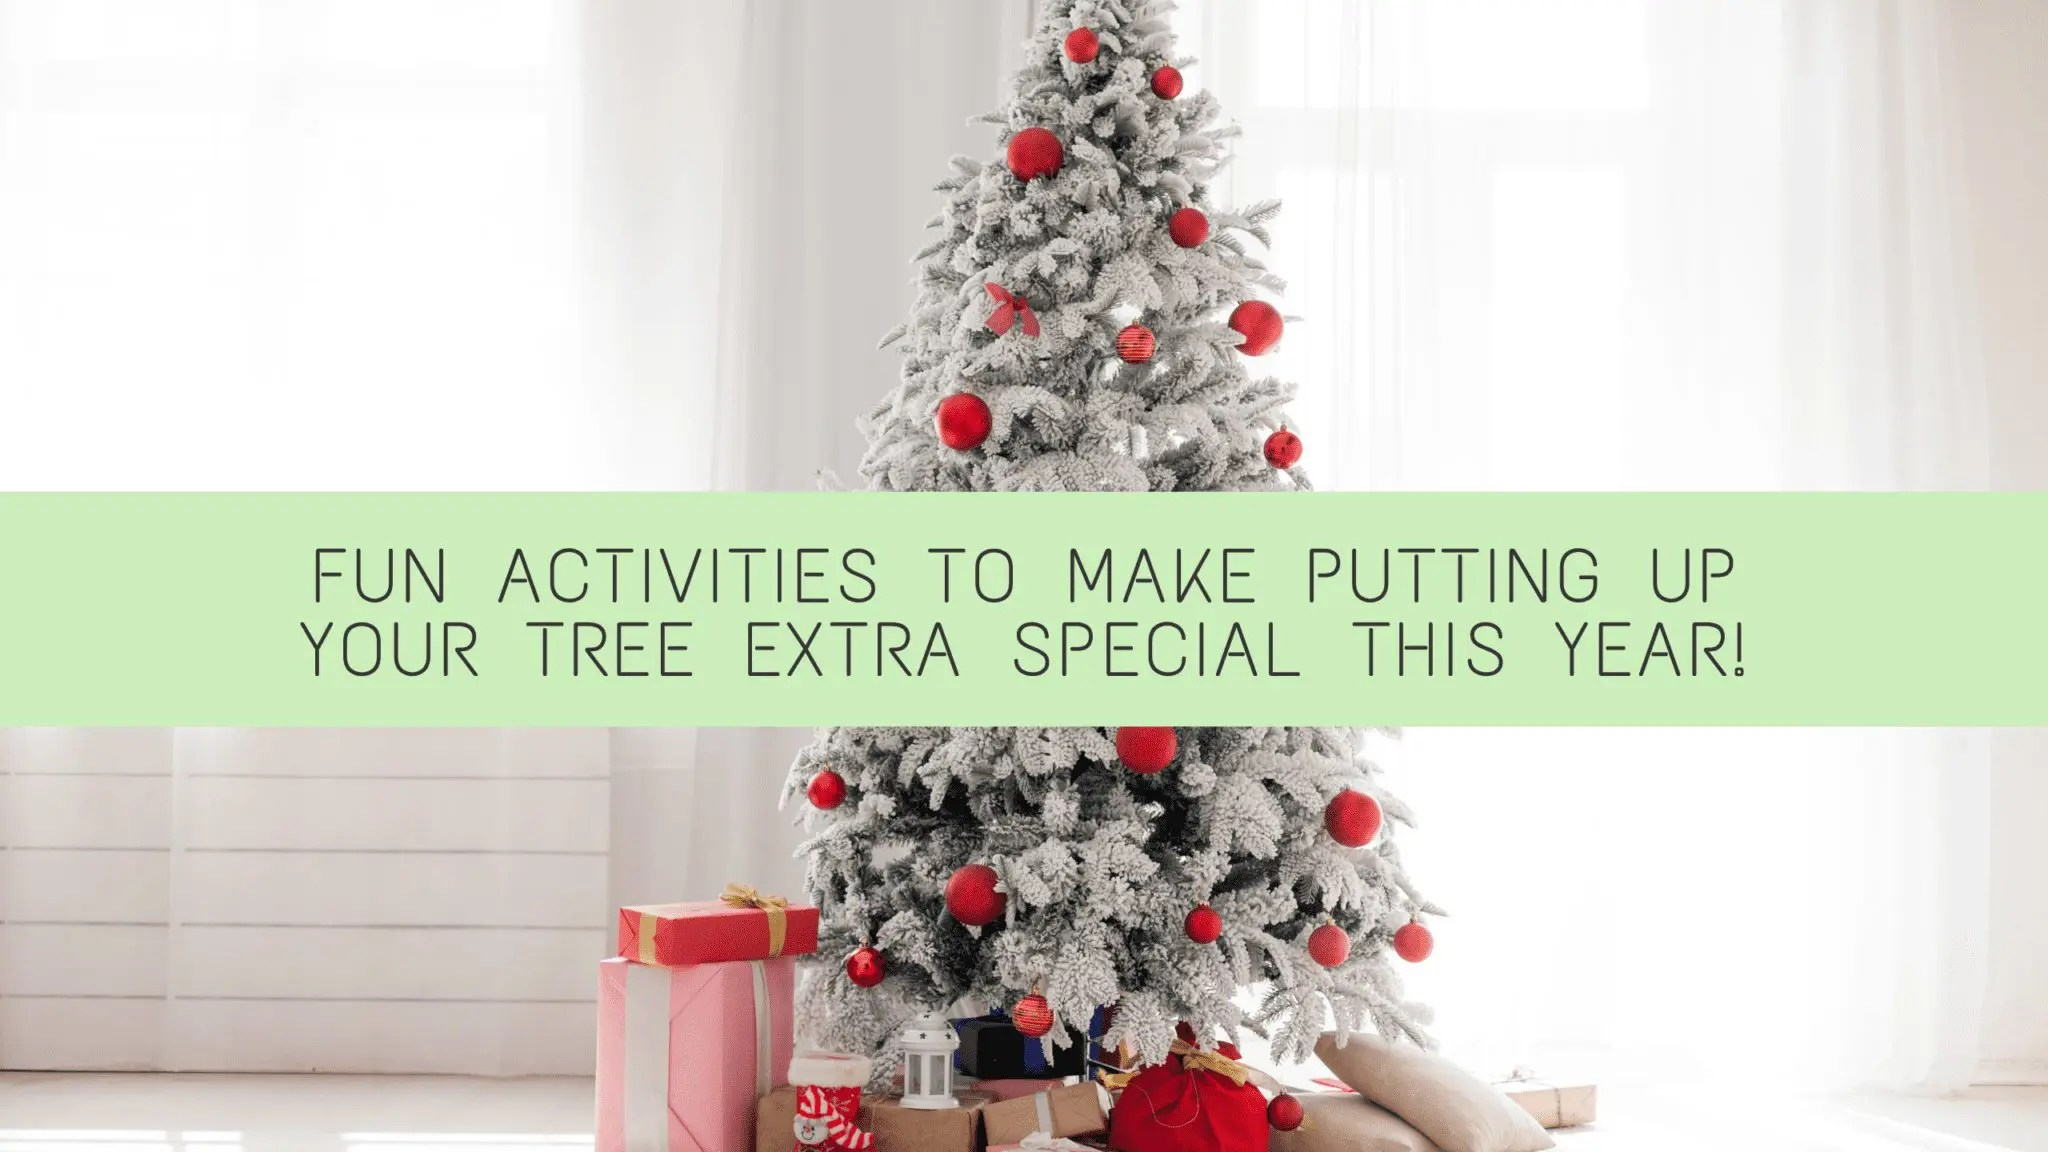 Make Decorating Your Christmas Tree Extra Special This Year!